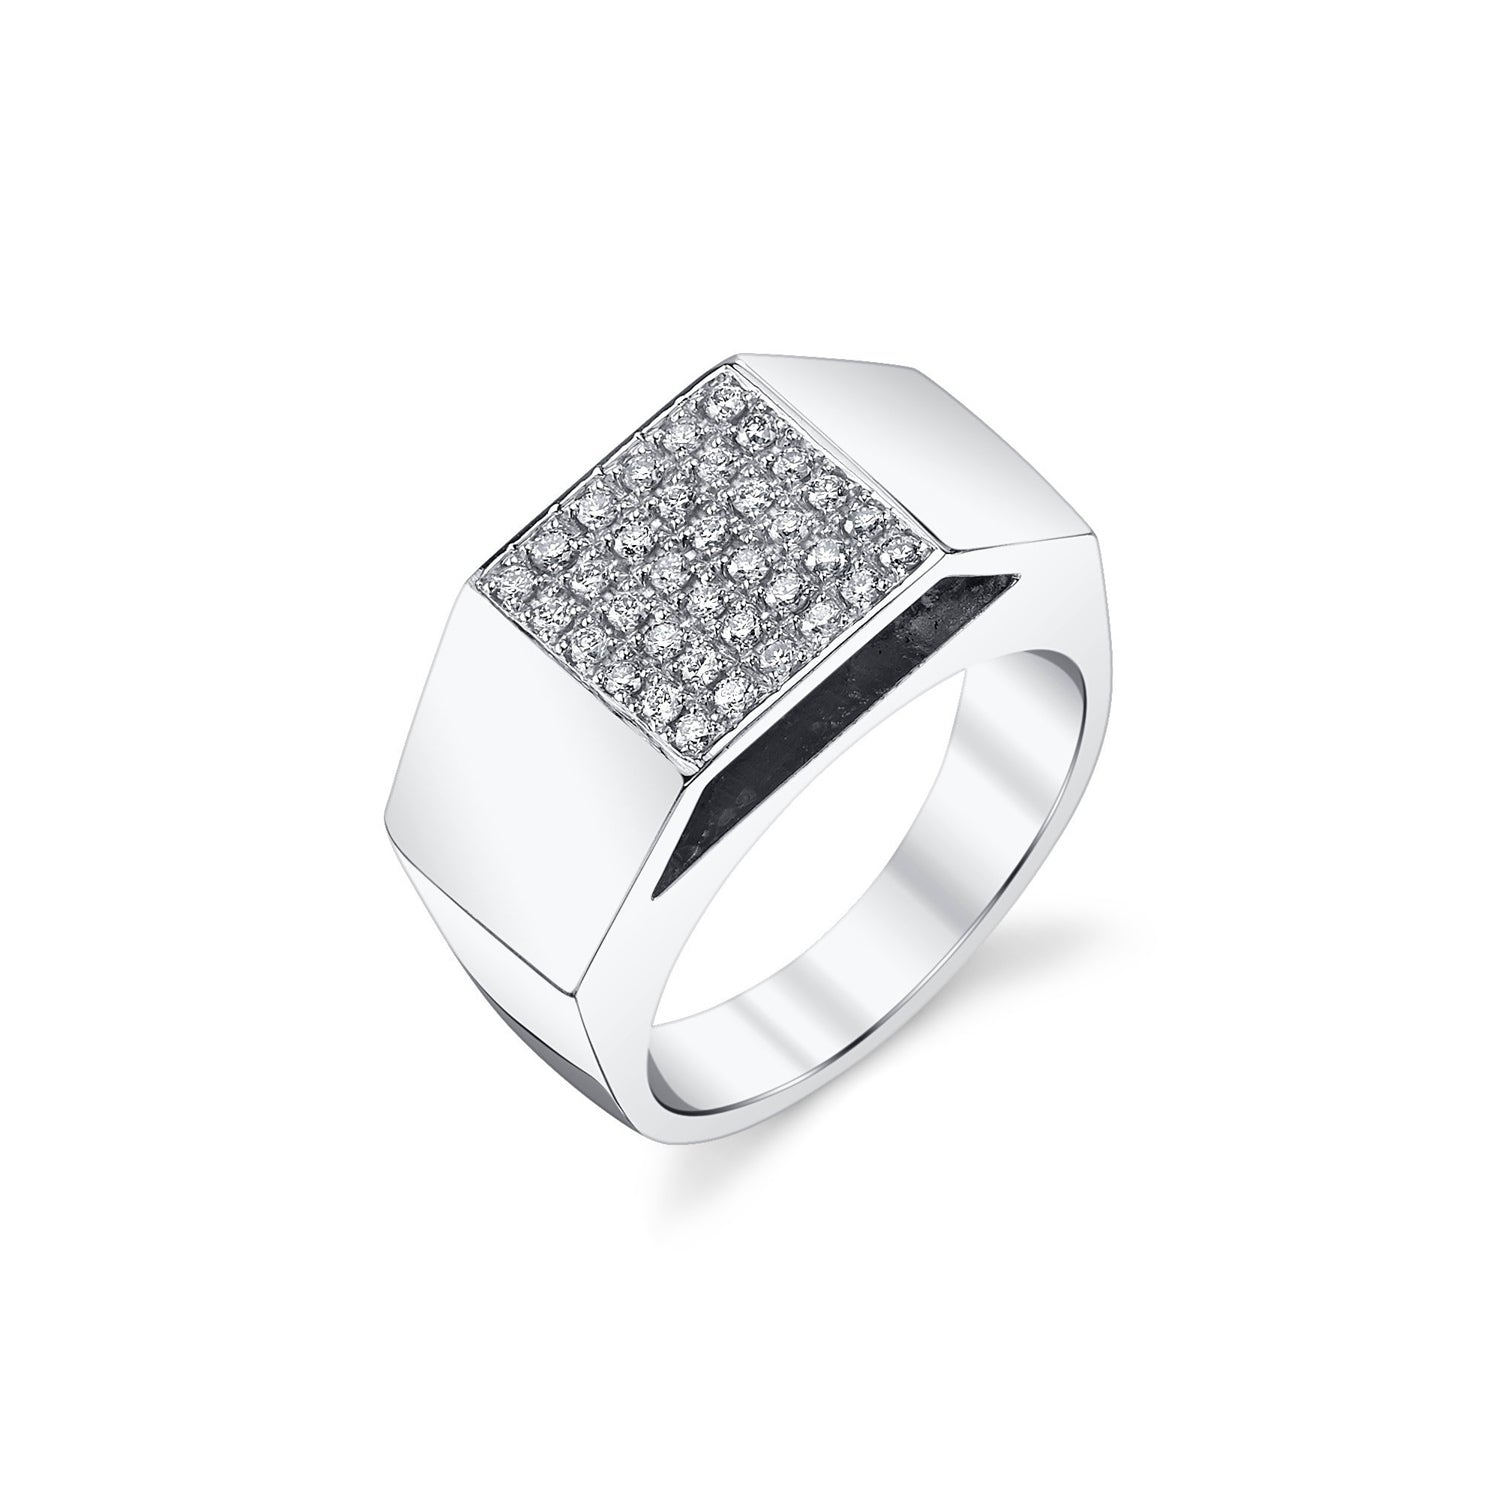 Cut Out Pedestal Ring With White Pavé Diamonds - Gabriela Artigas